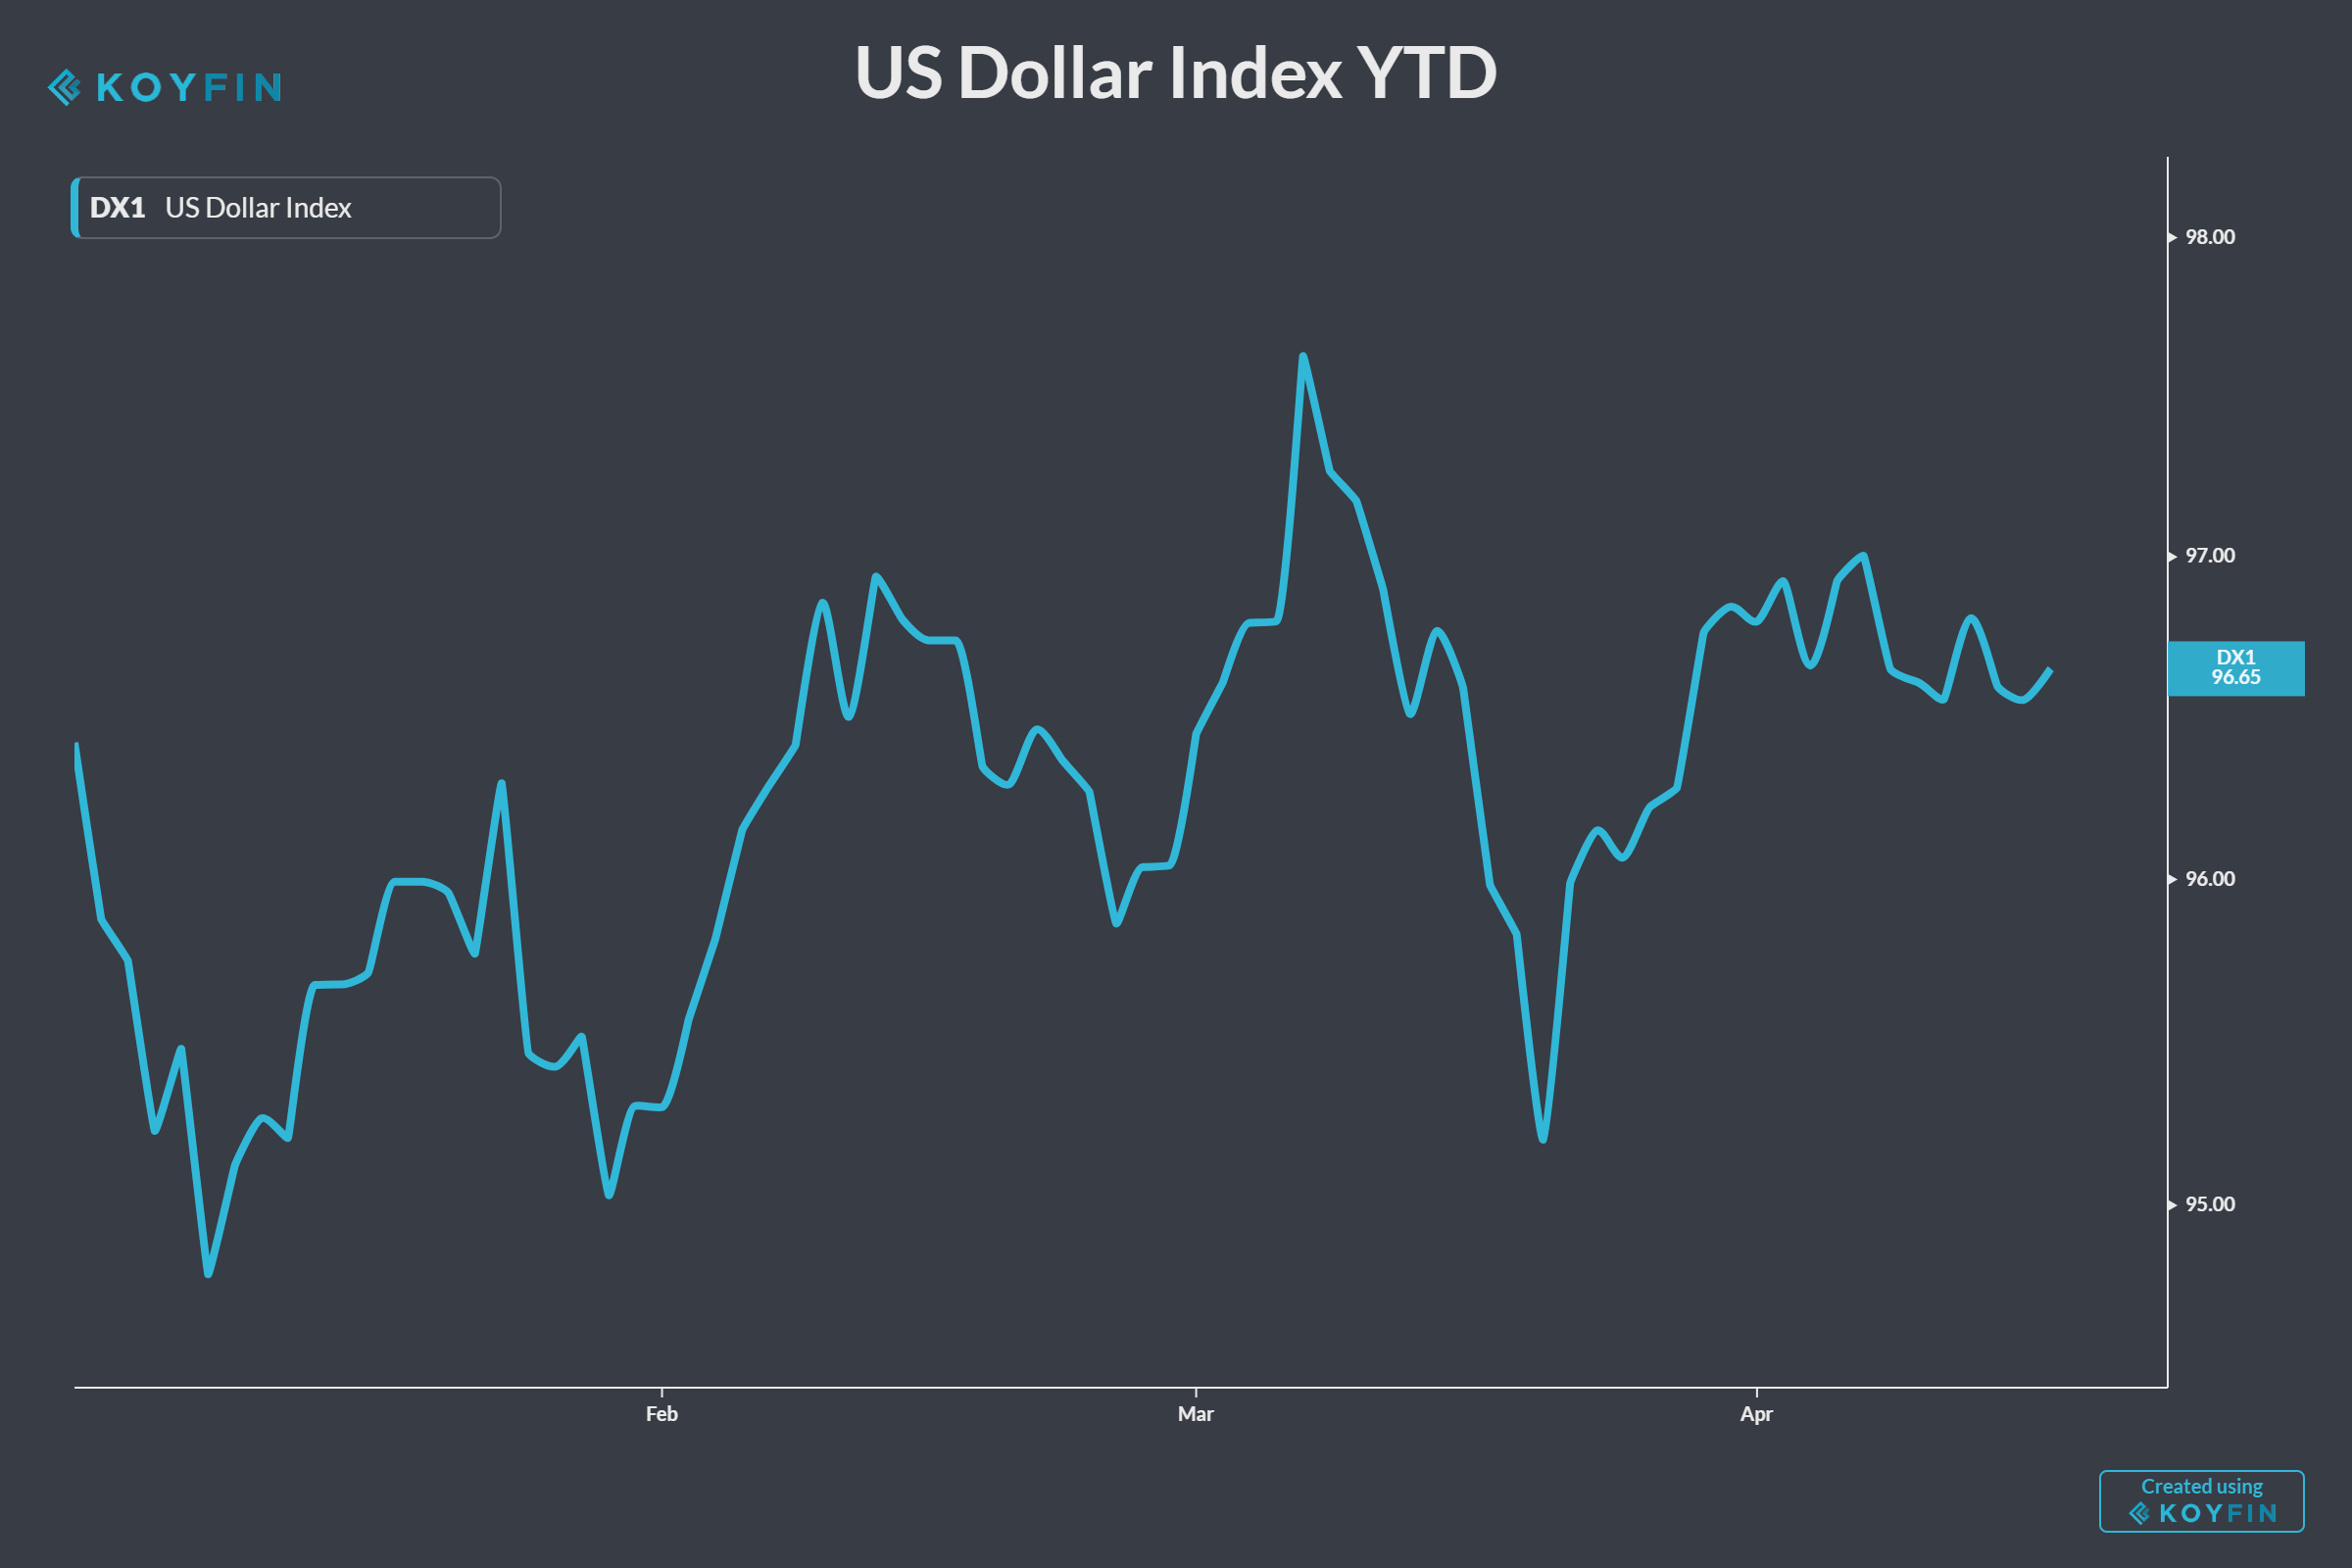 Year-to-date trading history for the U.S. Dollar Index